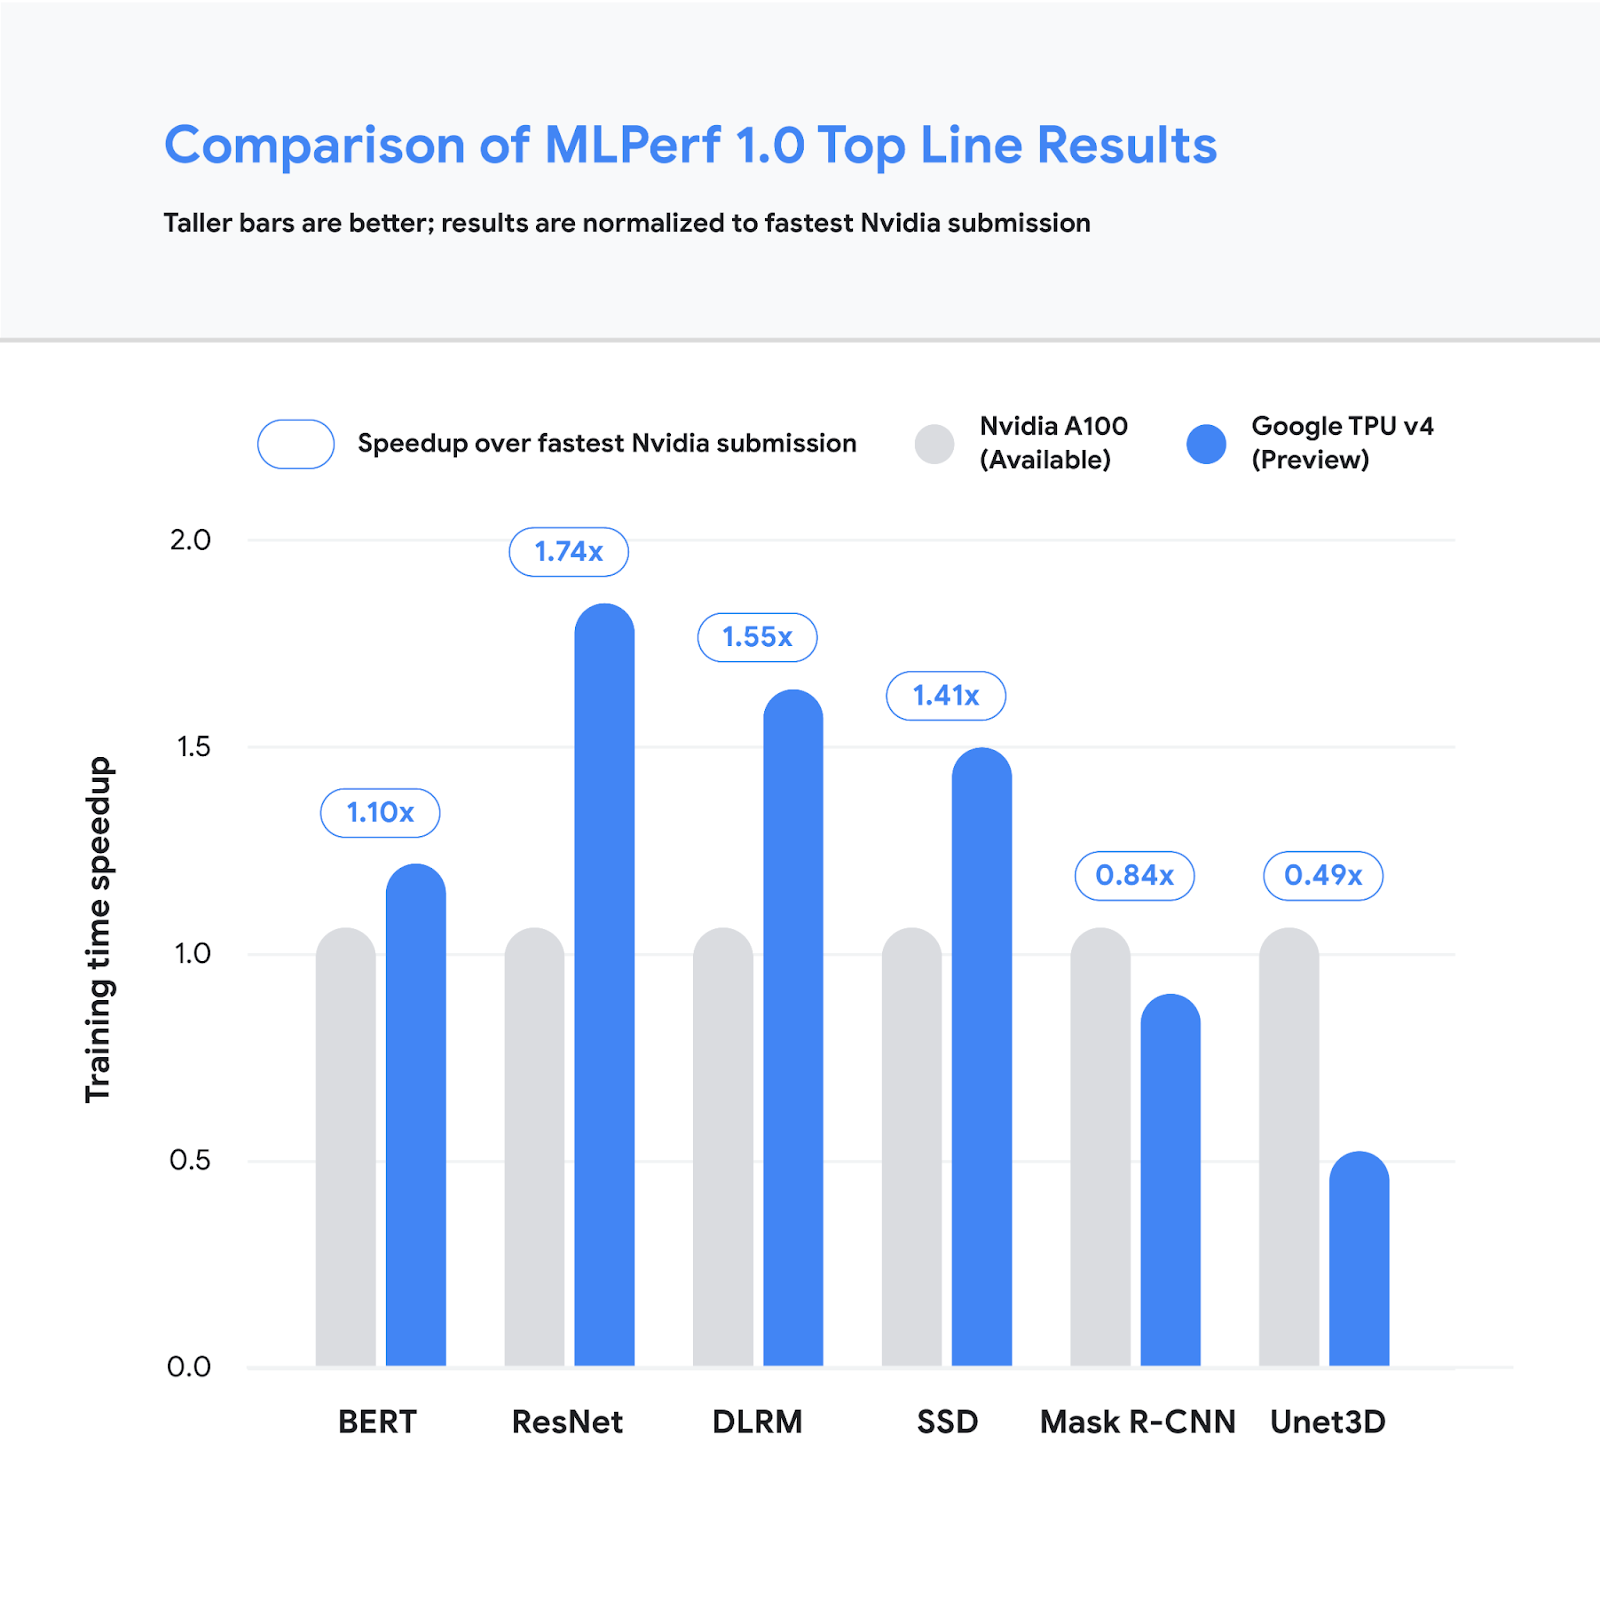 Speedup of Google's best MLPerf Training v1.0 TPU v4 submission over the fastest non-Google submission in any availability category - in this case, all baseline submissions came from NVIDIA. Comparisons are normalized by overall training time regardless of system size. Taller bars are better.